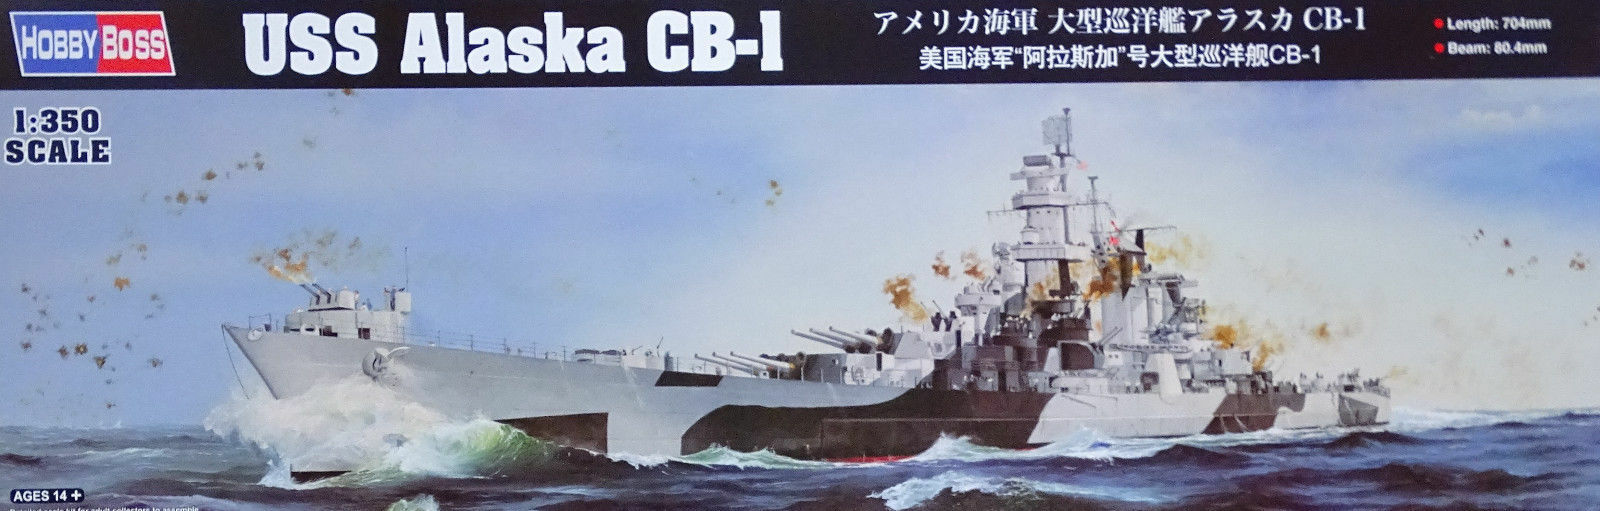 HobbyBoss USS Alaska CB-1 1 3 50 Kit Model Set Item 86513 Battle Ship Ship